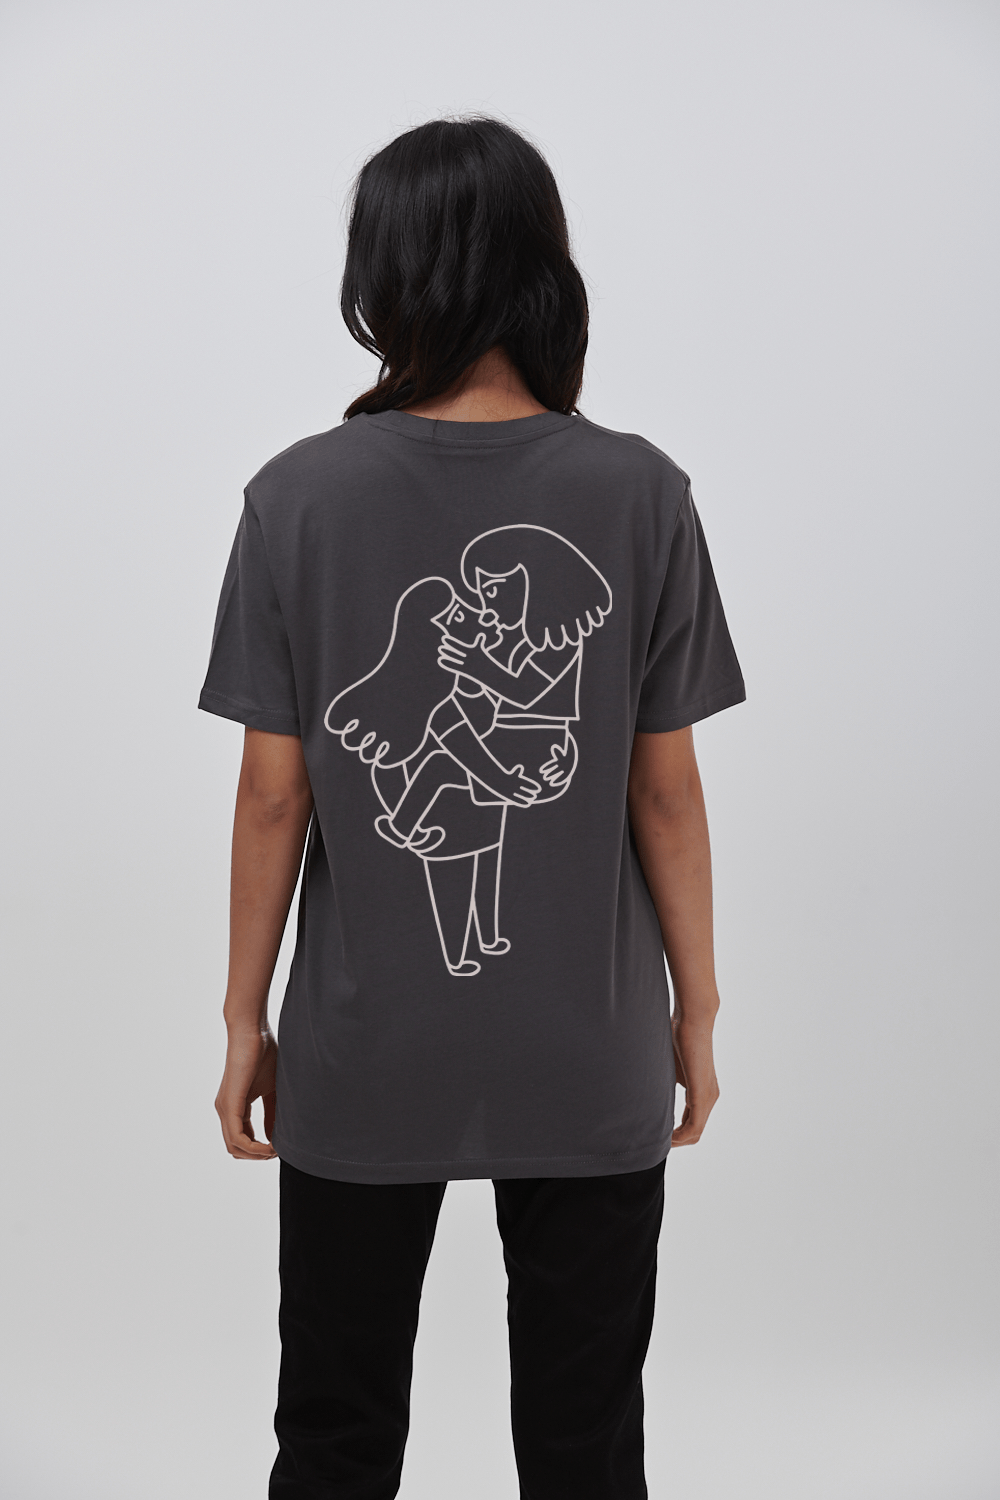 Lucy & Yak TOP 'Edie' Limited Edition Teeshirt By Nat